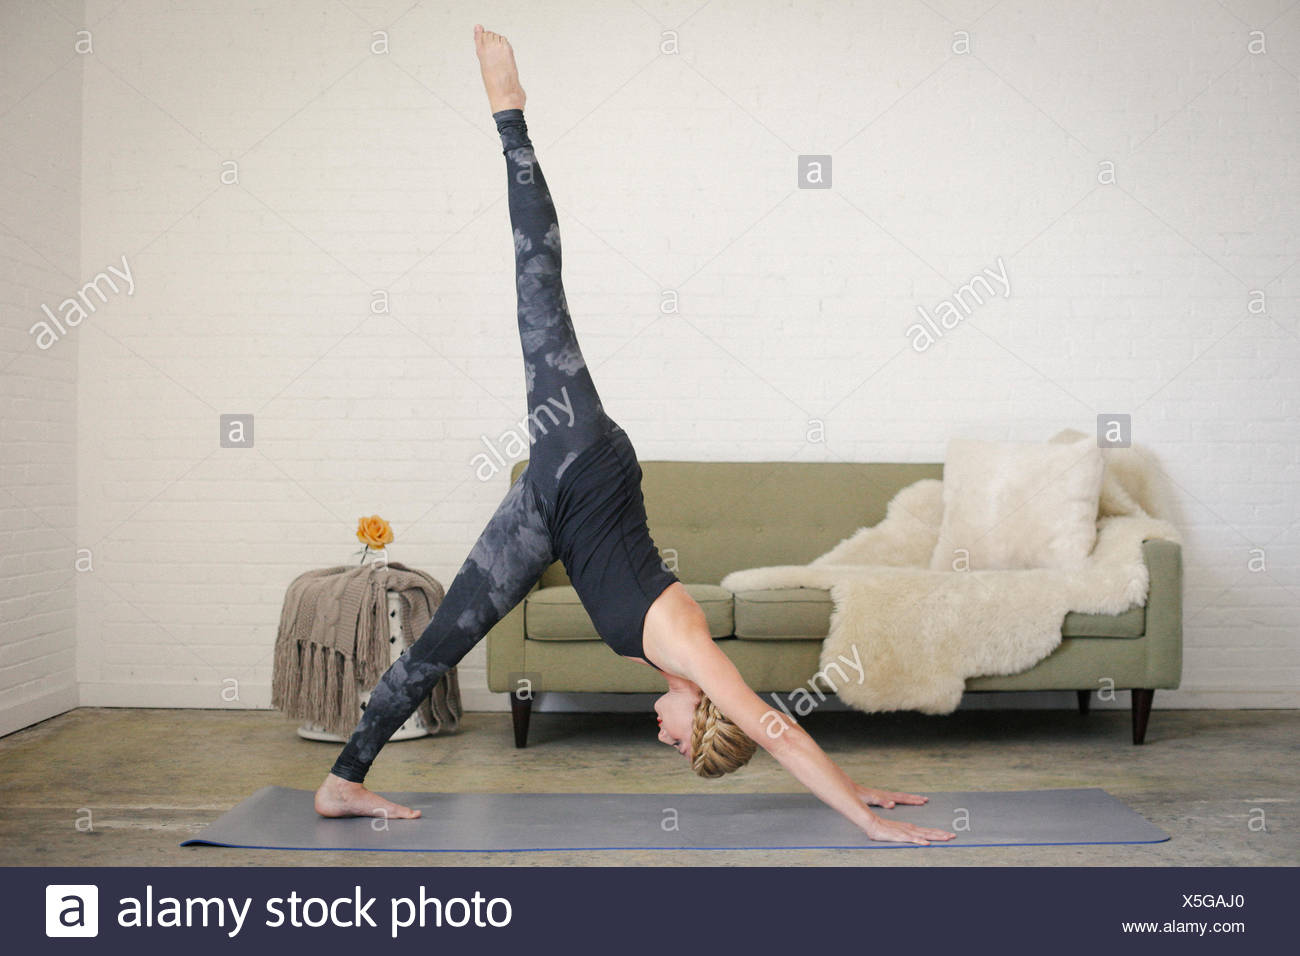 A blonde woman standing on a yoga mat in a room, bending down with her hands touching the floor, one leg raised. - Stock Image